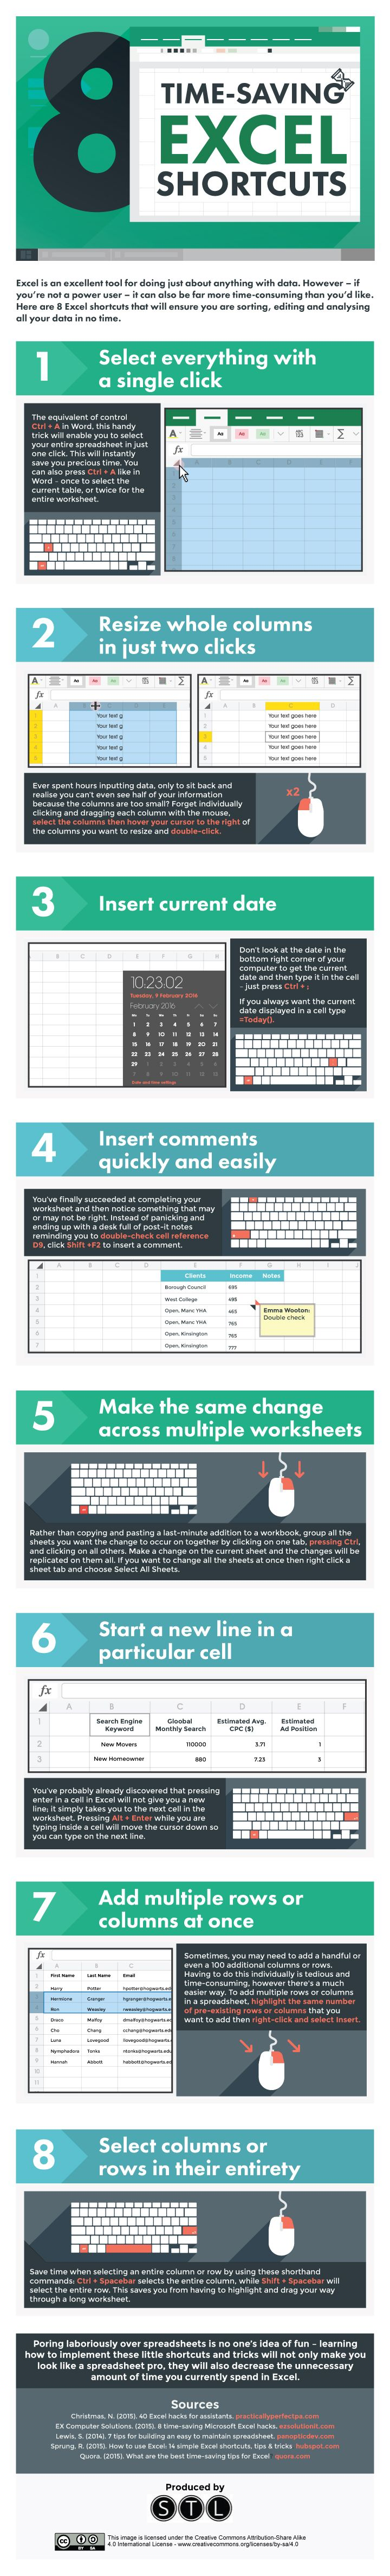 8 time saving shortcuts in Excel #infographic #Productivity #Excel                                                                                                                                                                                 More